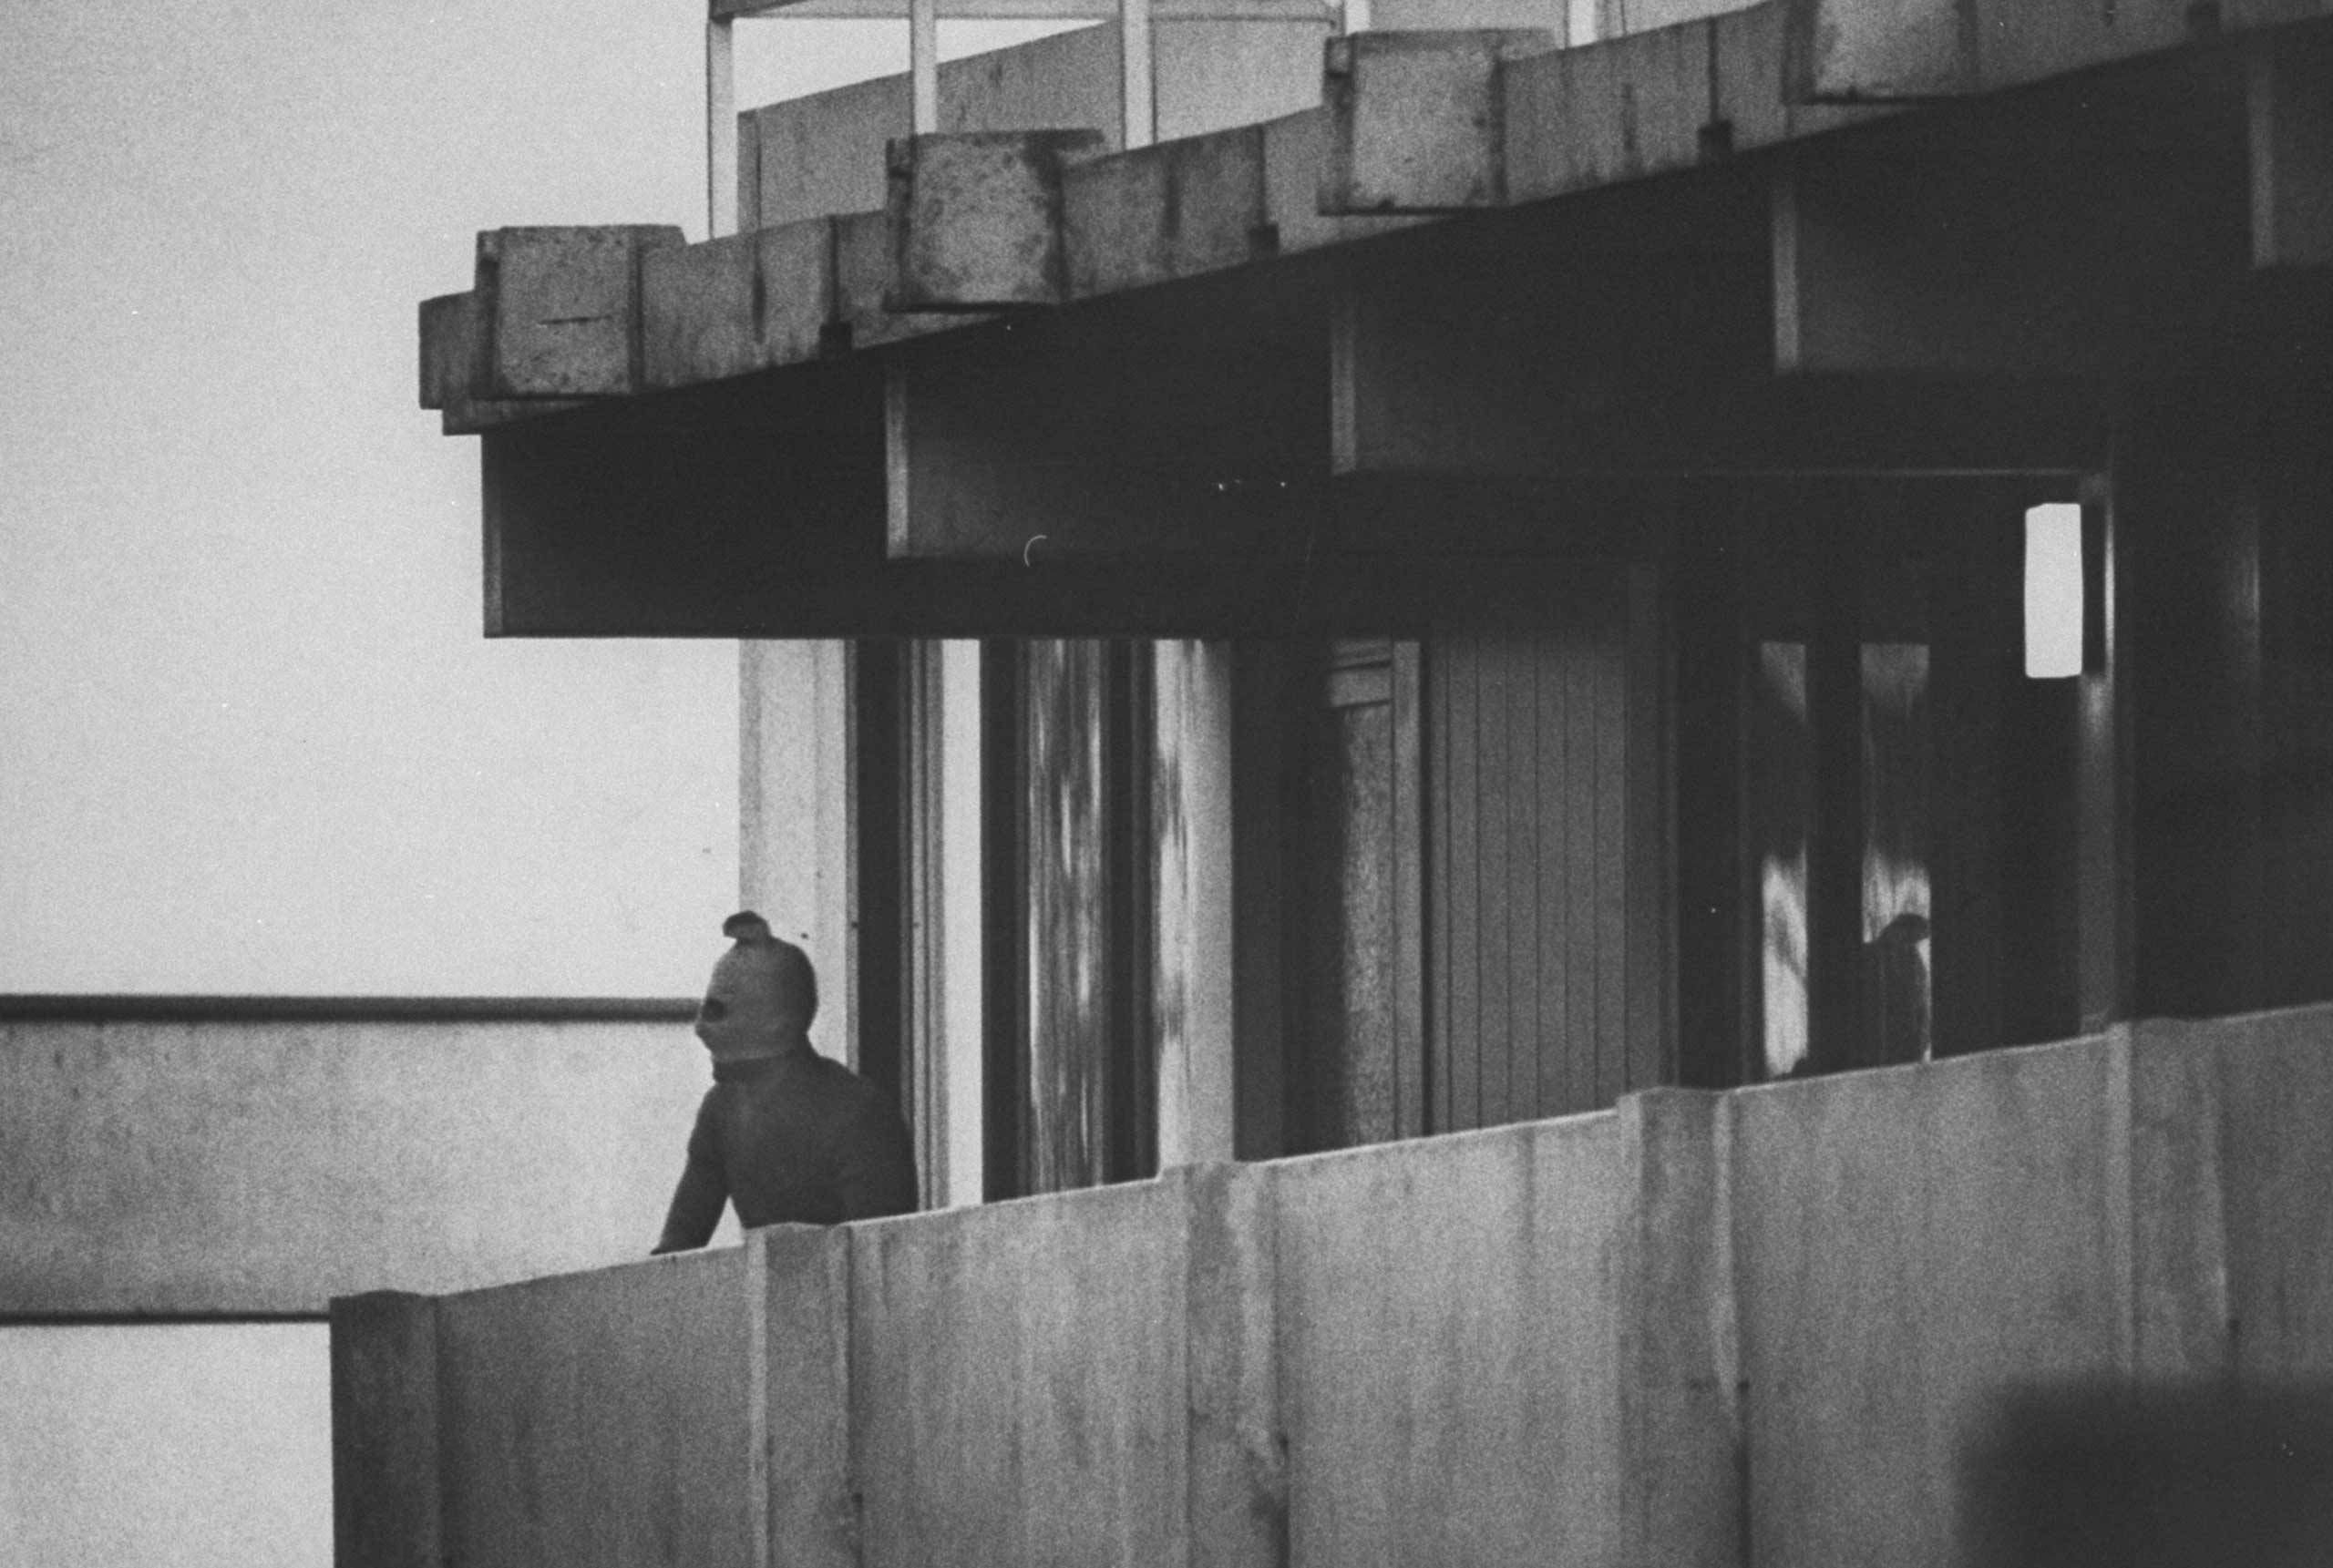 "<b>1972</b> | A masked Palestinian terrorist looks out from a balcony of the athletes' housing complex during the Munich Summer Olympics. On September 5, eight Palestinian guerrillas took 11 Israeli athletes and coaches hostage, and subsequently murdered all of them, in what came to be known as the ""Munich Massacre"" — the most infamous and violent outrage in Olympic history. Originally published in the September 15,1972, issue of LIFE."